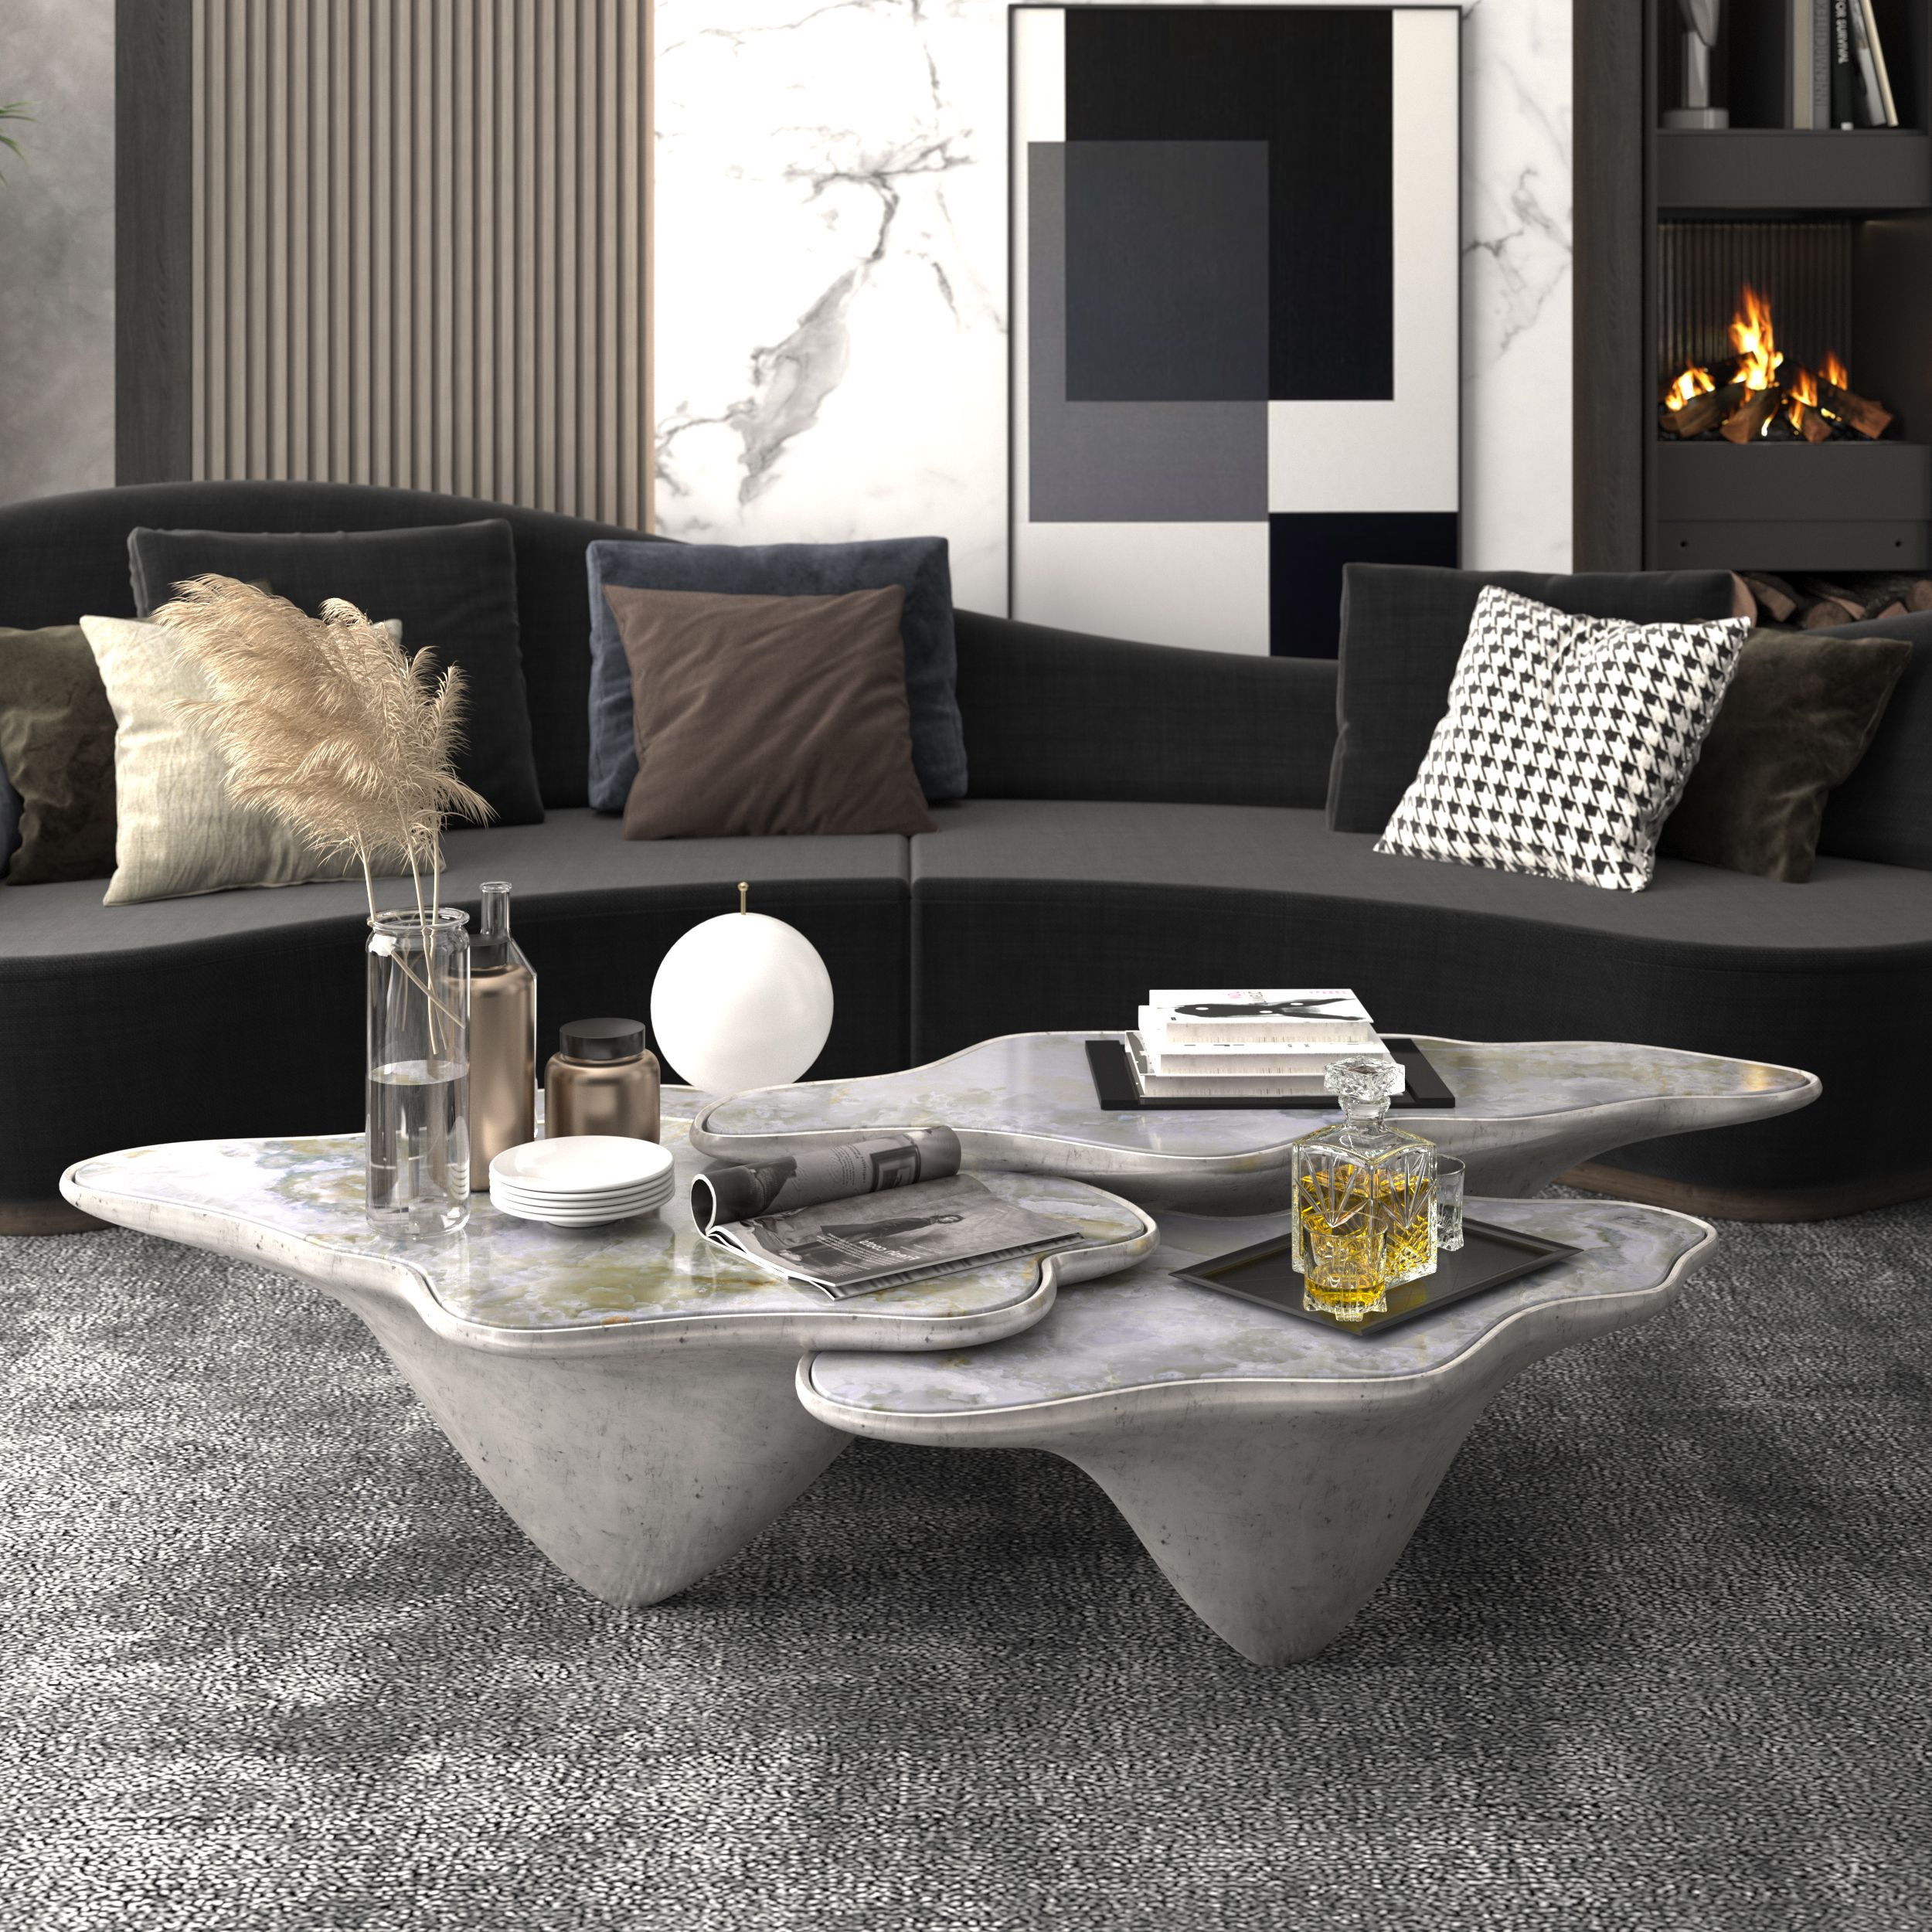 Trendy Coffee Table Ideas For The Modern Minimalist Trendy Coffee Table Minimalist Coffee Table Coffee Table Design [ 1192 x 1000 Pixel ]